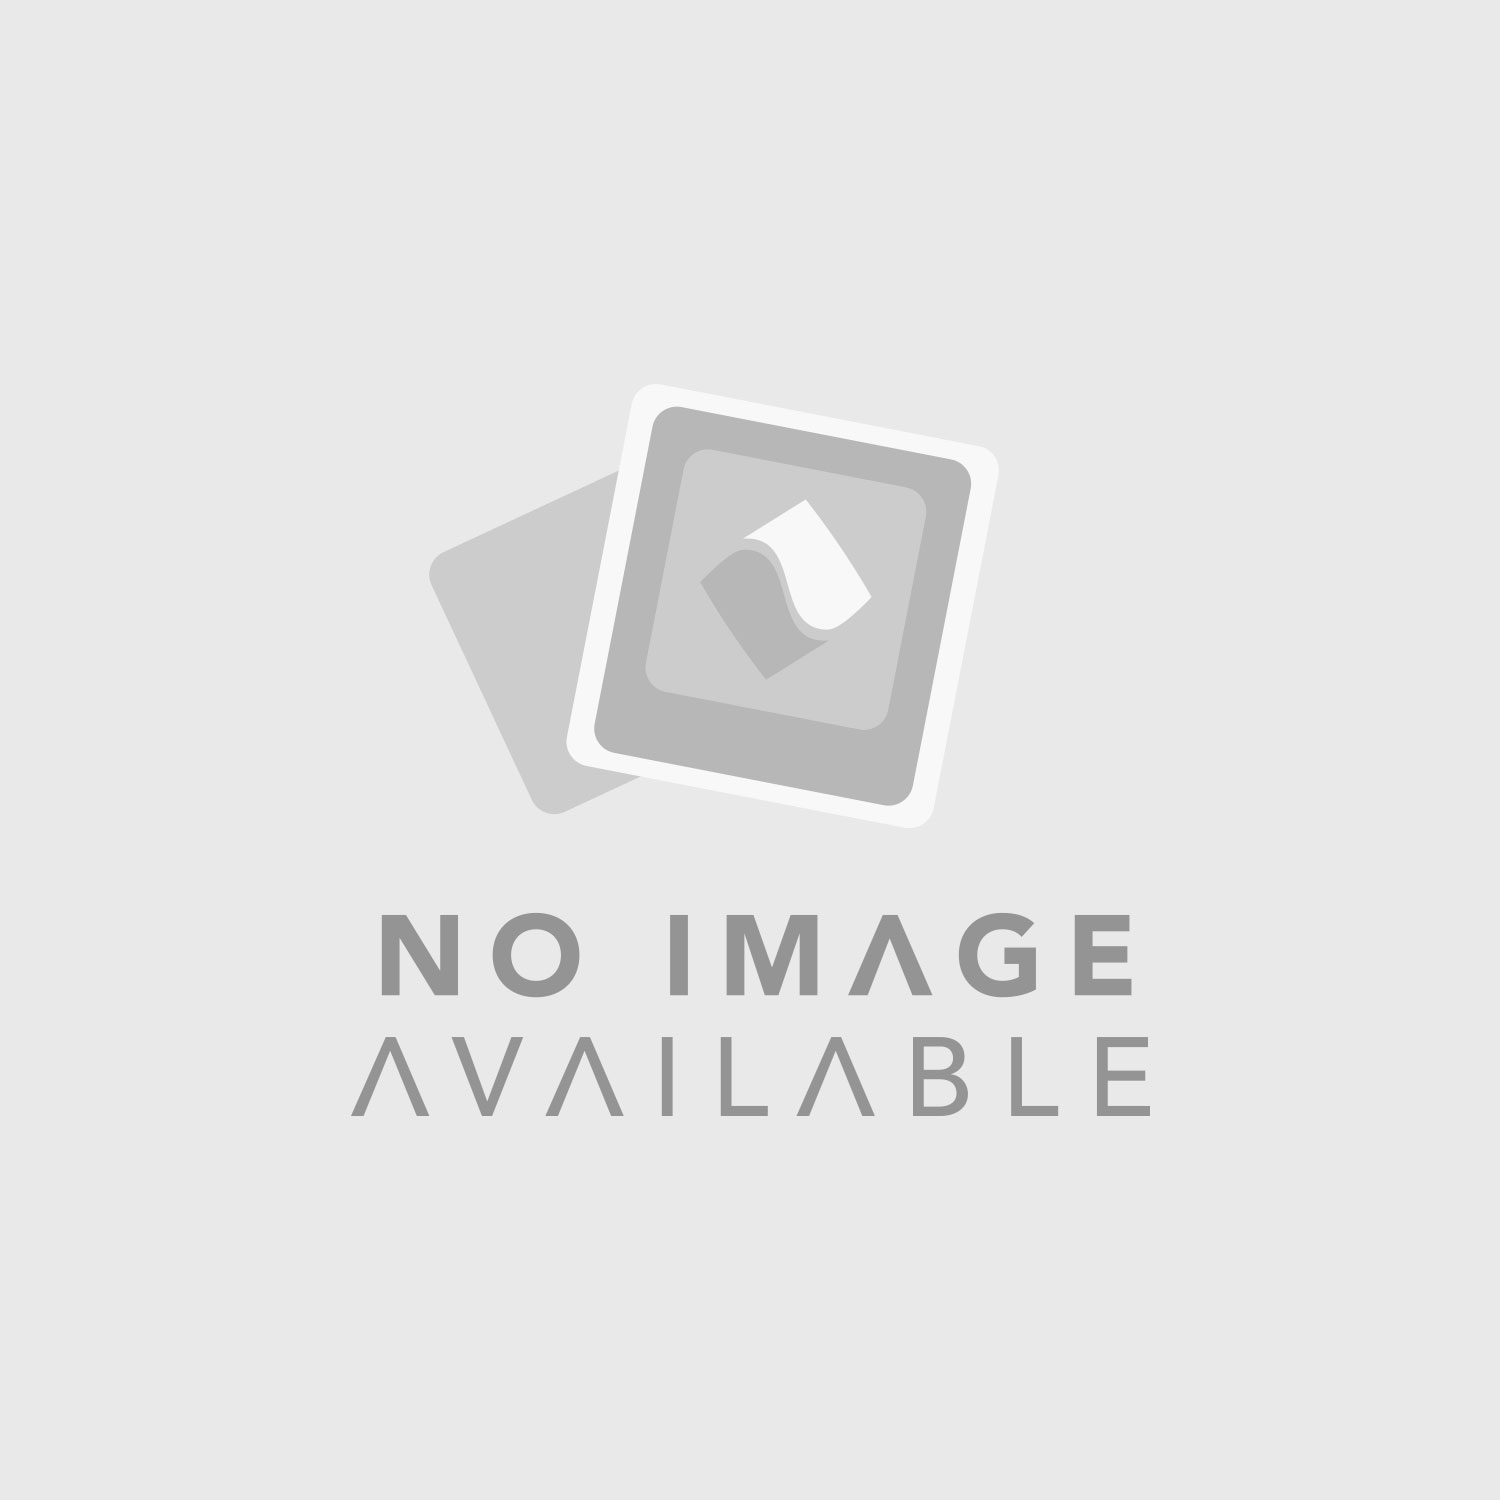 Rode RodeCaster Pro Ultimate 4 Guest Podcasting Bundle with ZDM-1 Mics (Compass Boom Arms)